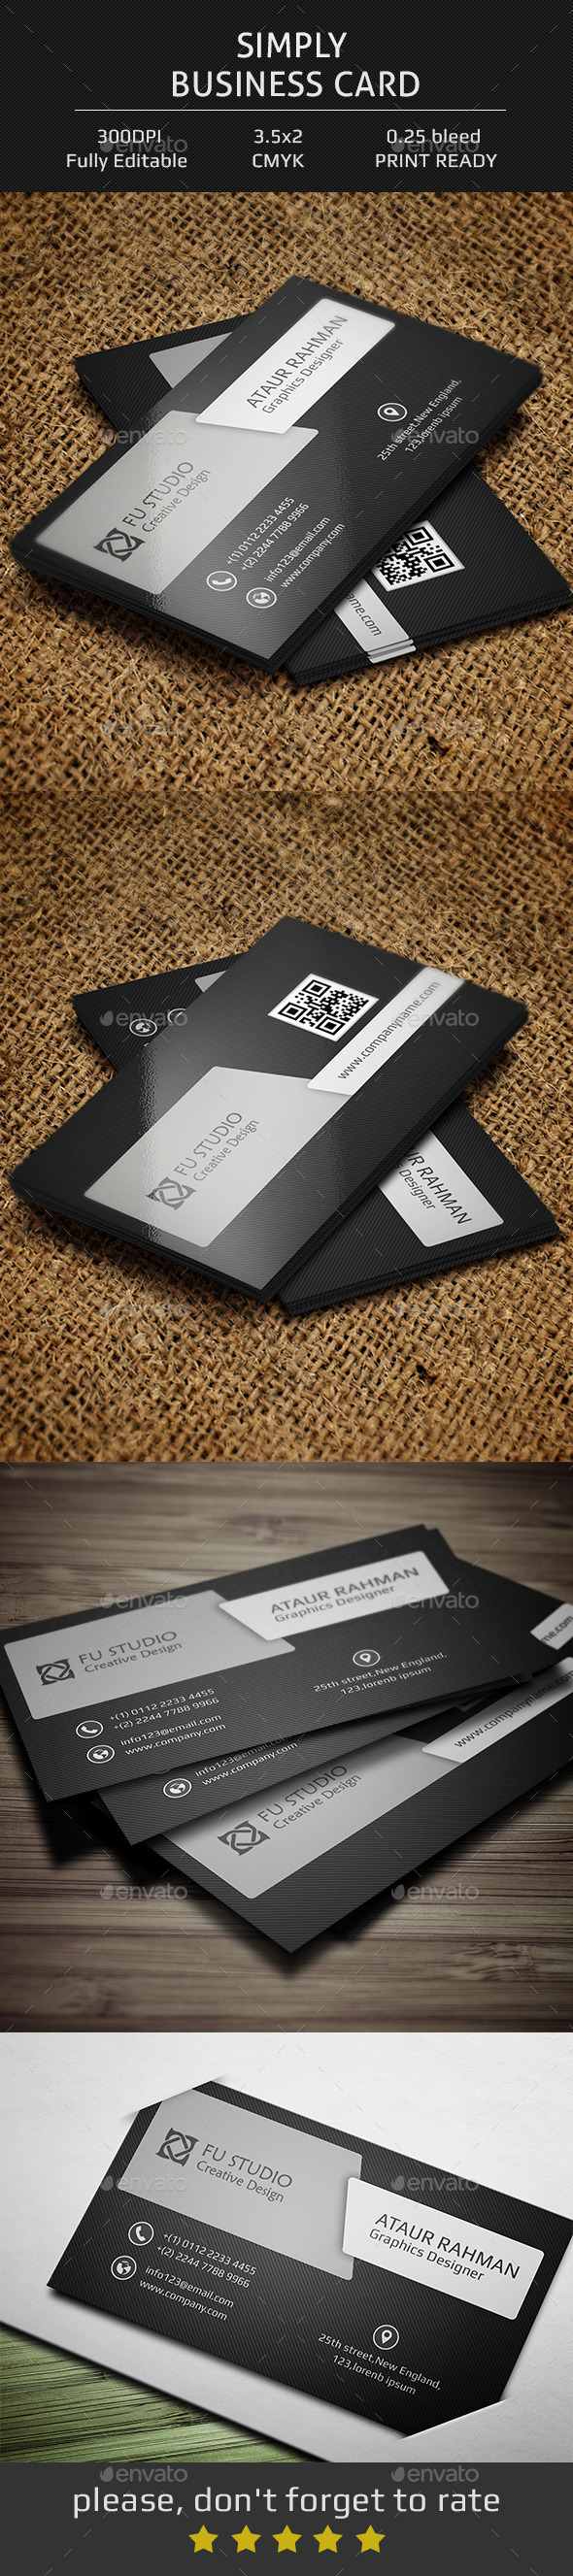 Simply Business Card - Corporate Business Cards